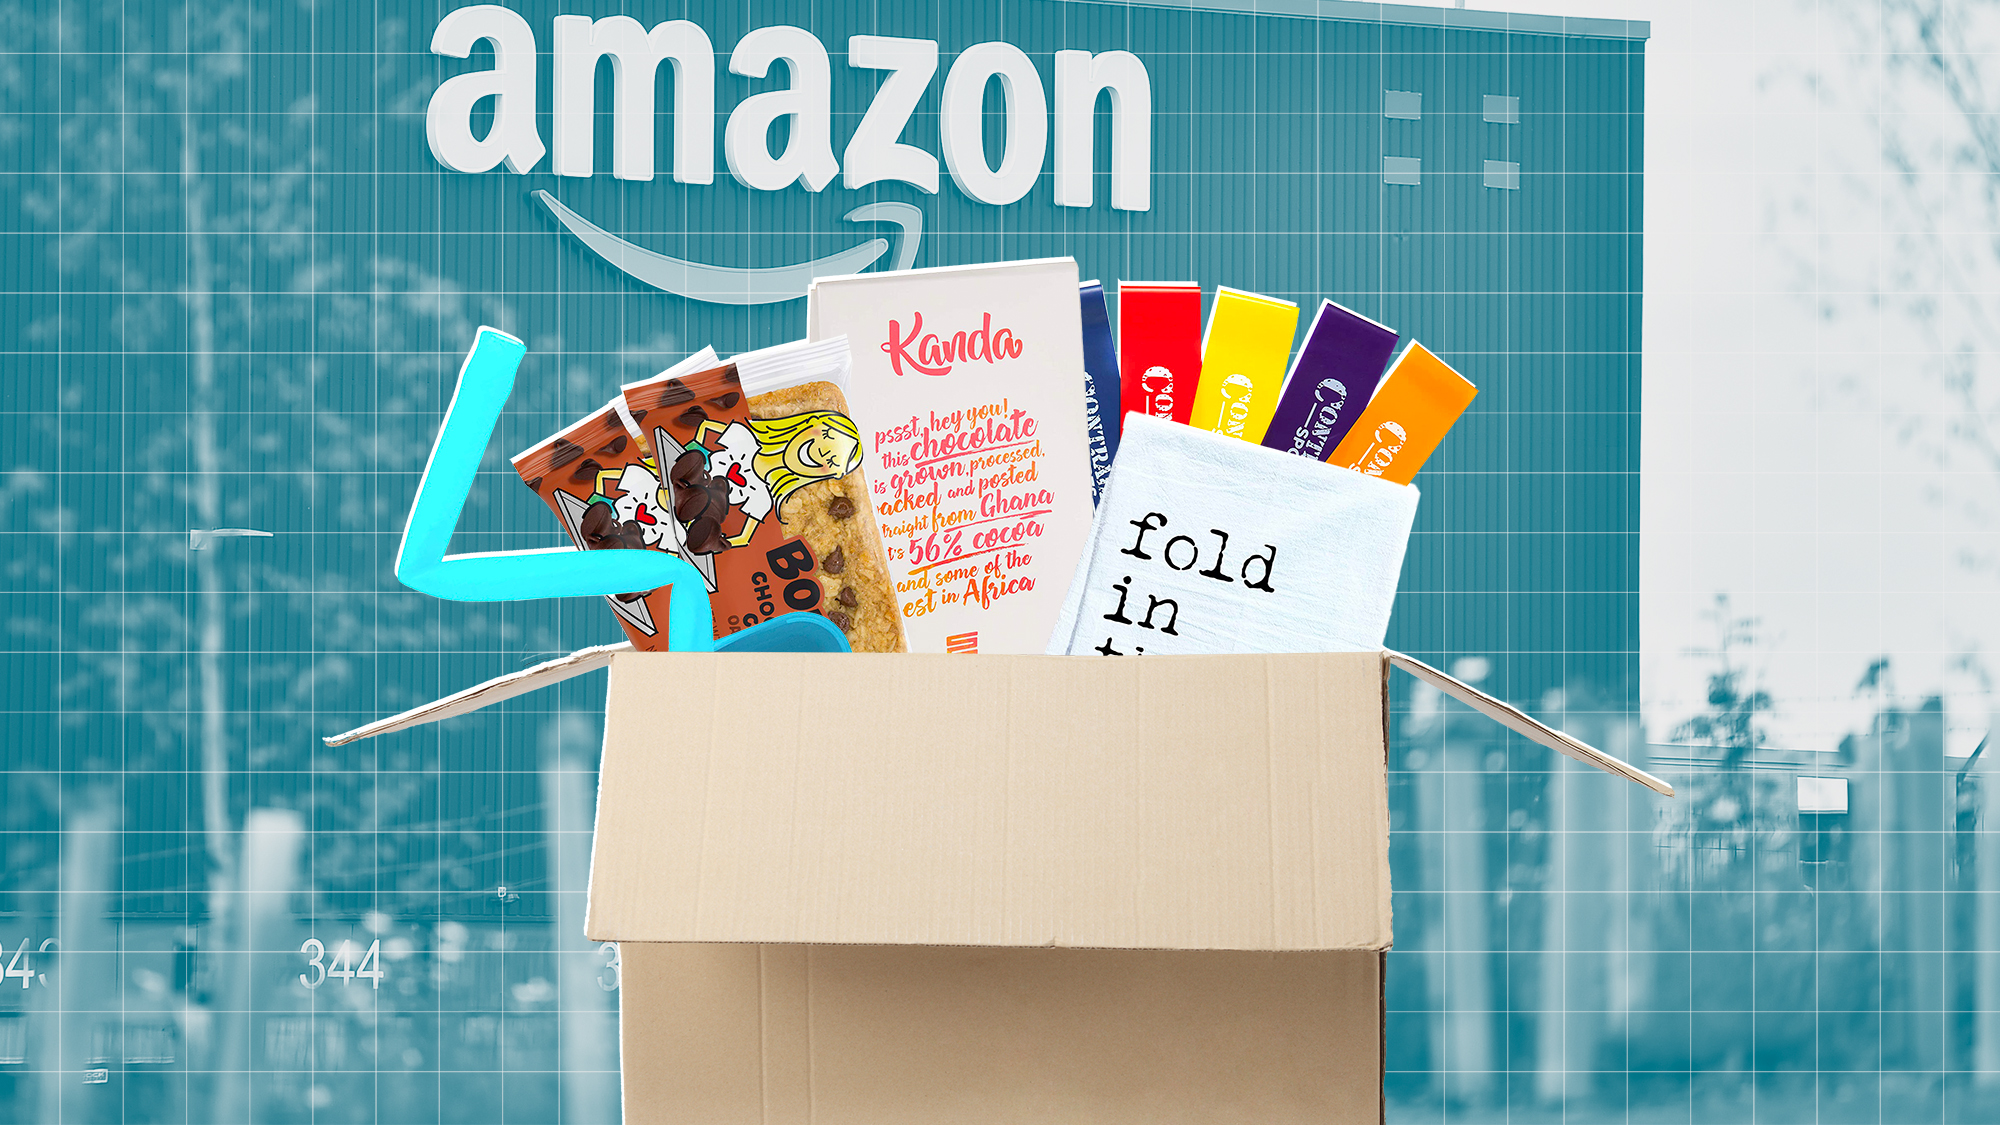 A selection of amazon products in a box on a designed background